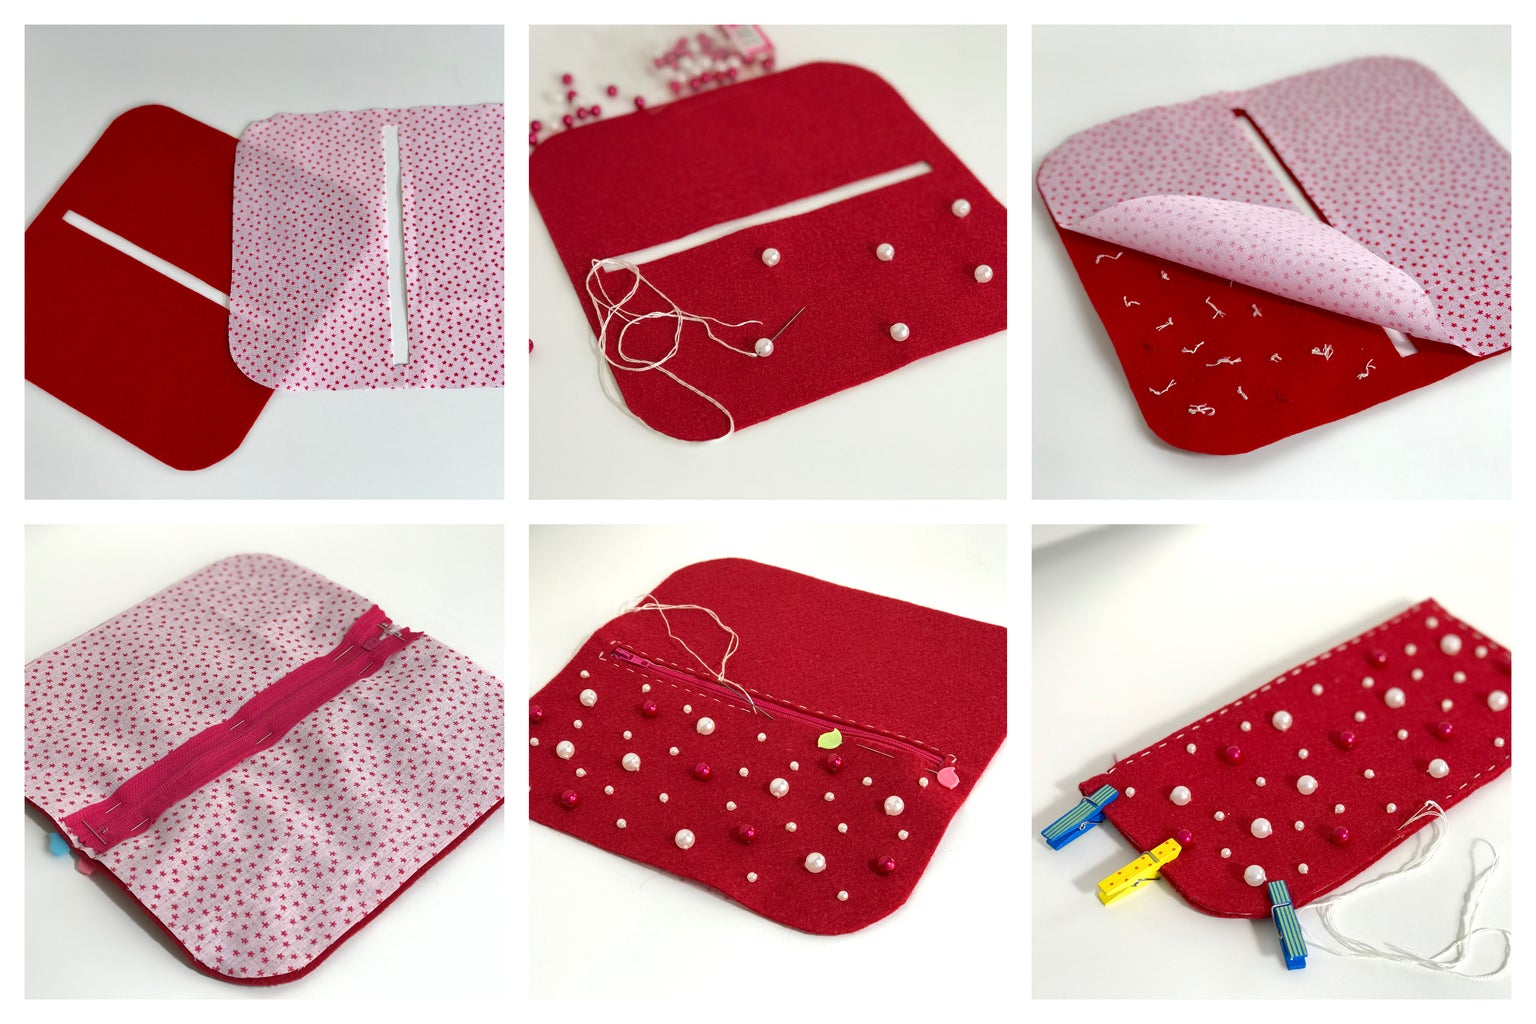 Tip: for Embroidered Pouch You Need to Get Started With Bead Embroidery and After Hide All Knots Under Lining.